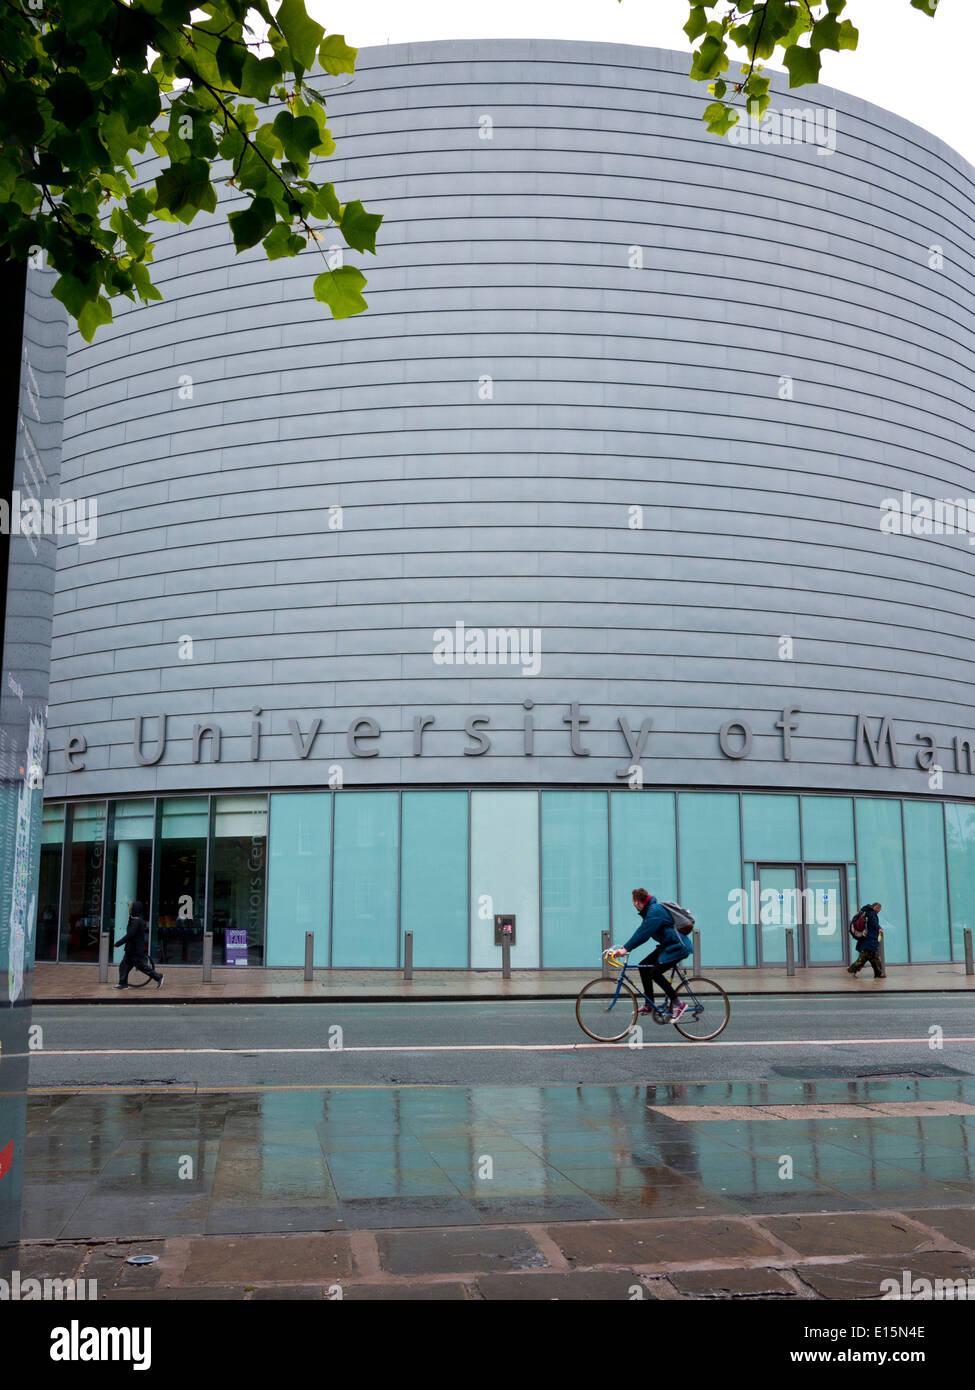 University Place which is for conferences,lectures,and a visitors centre,Oxford rd, Manchester,UK. - Stock Image